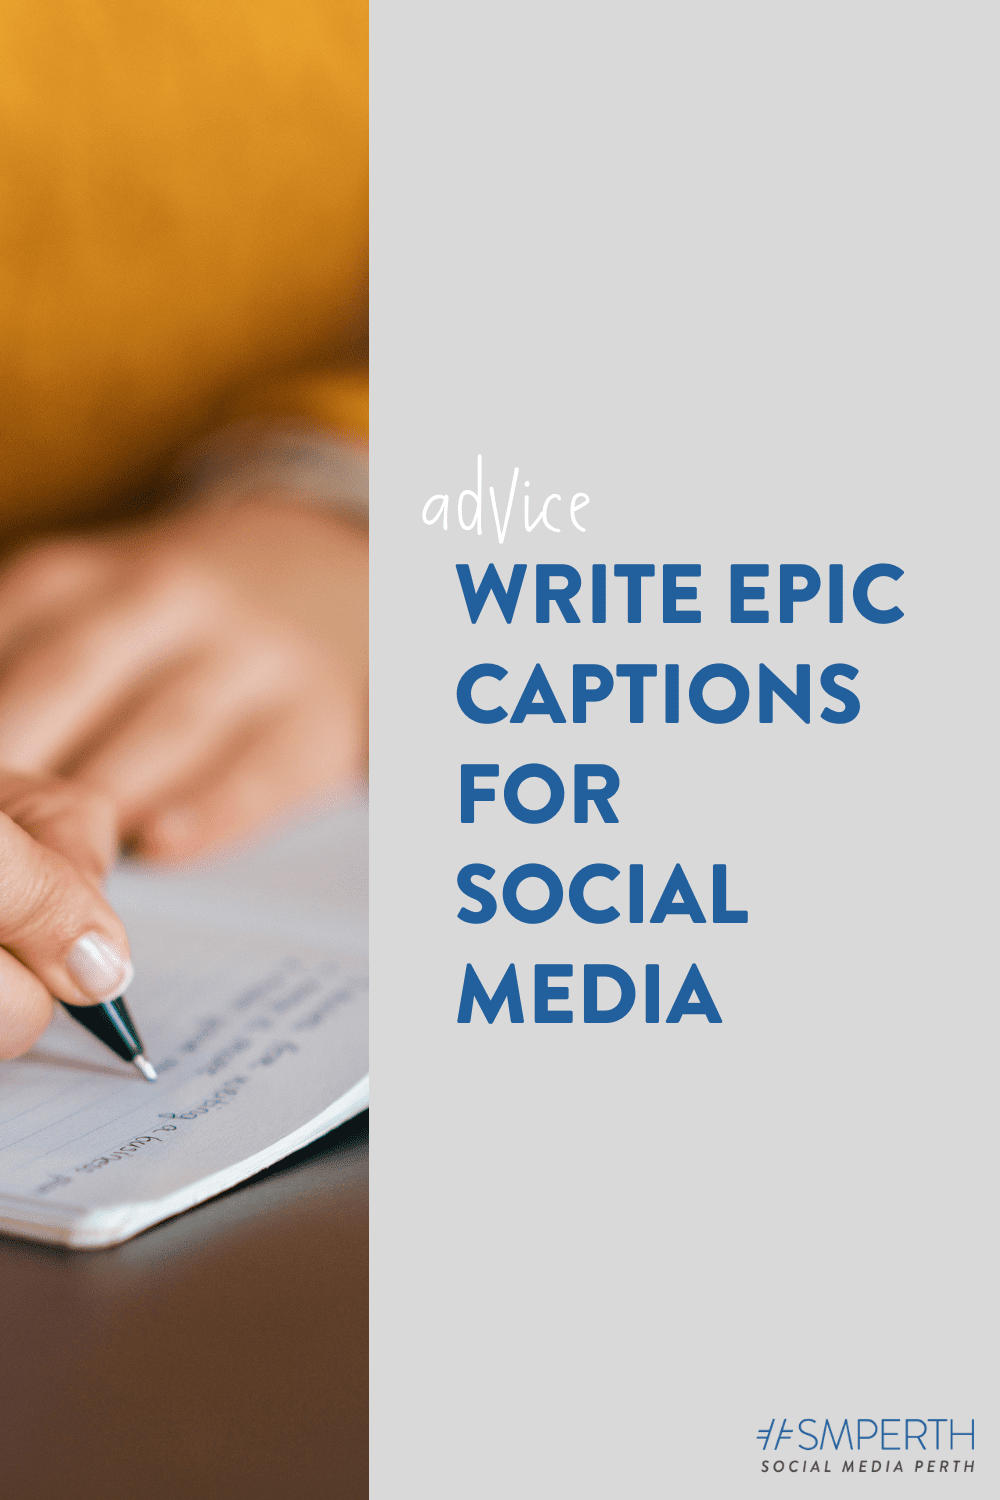 3 Hot Tips for Writing Epic Captions